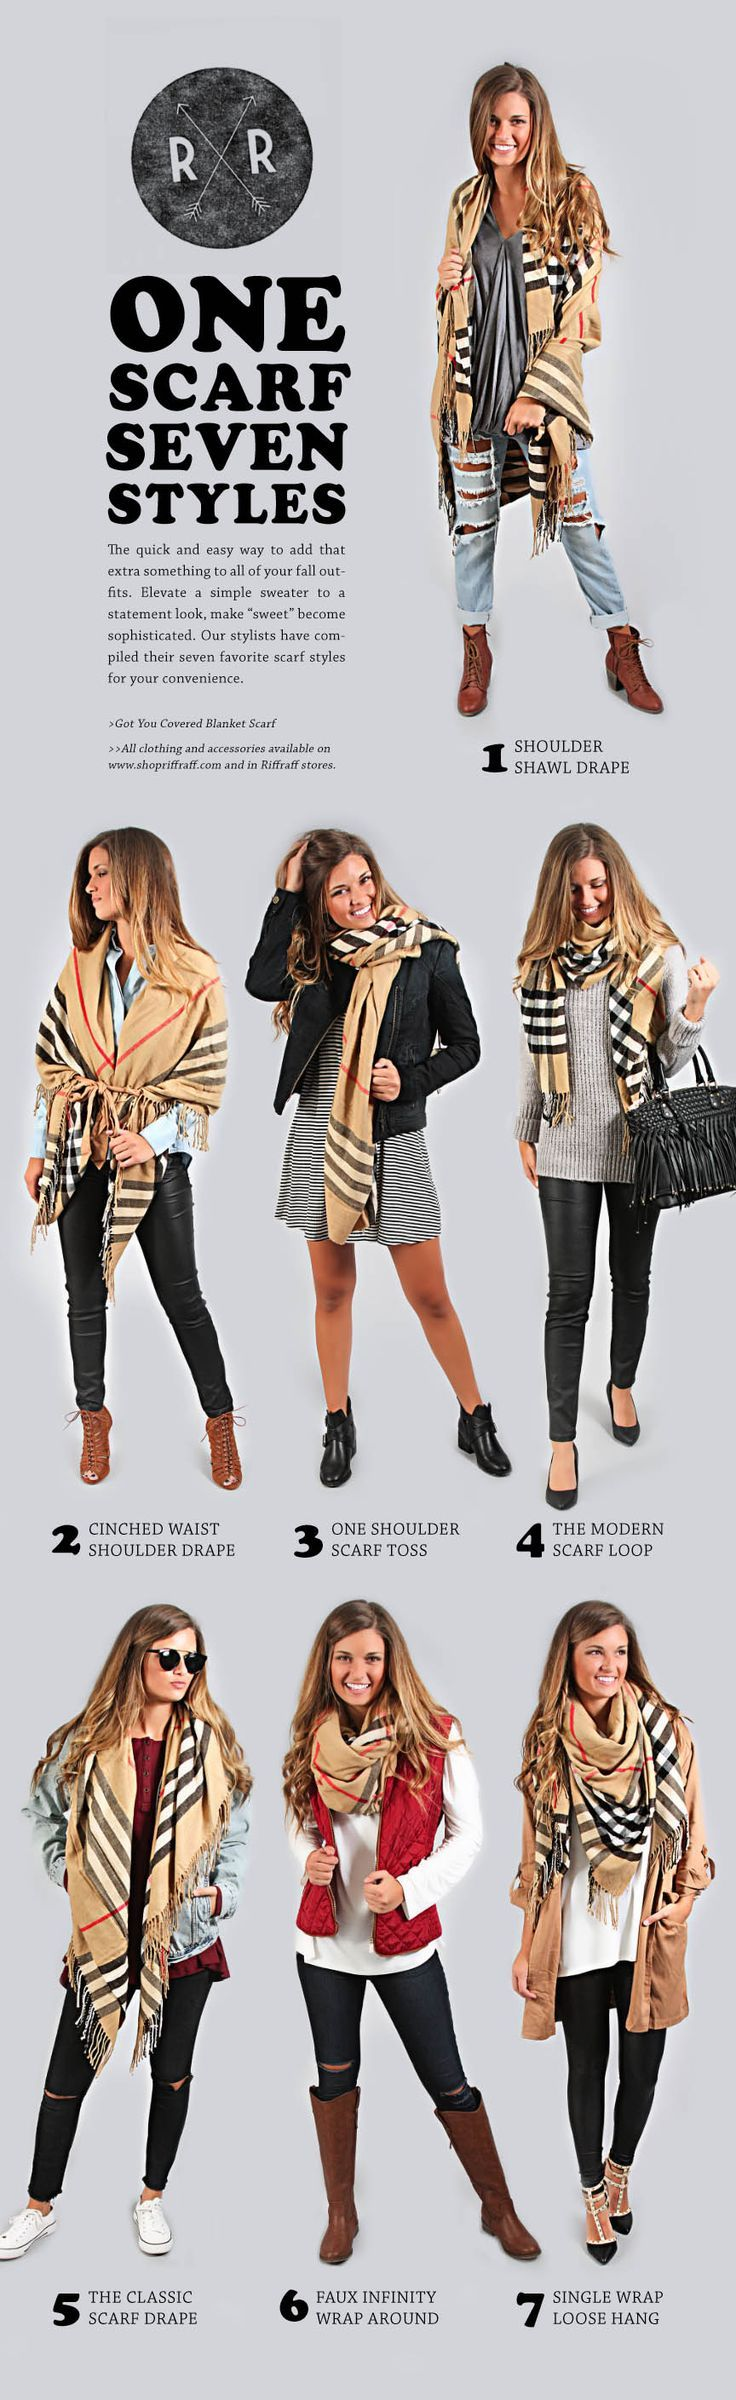 Pin By A Bird And Bean On Fashion Beauty Pinterest How To Tie The Doublewrap Double Windsor Knot Cant Wait Pull My Blanket Scarf Back Out